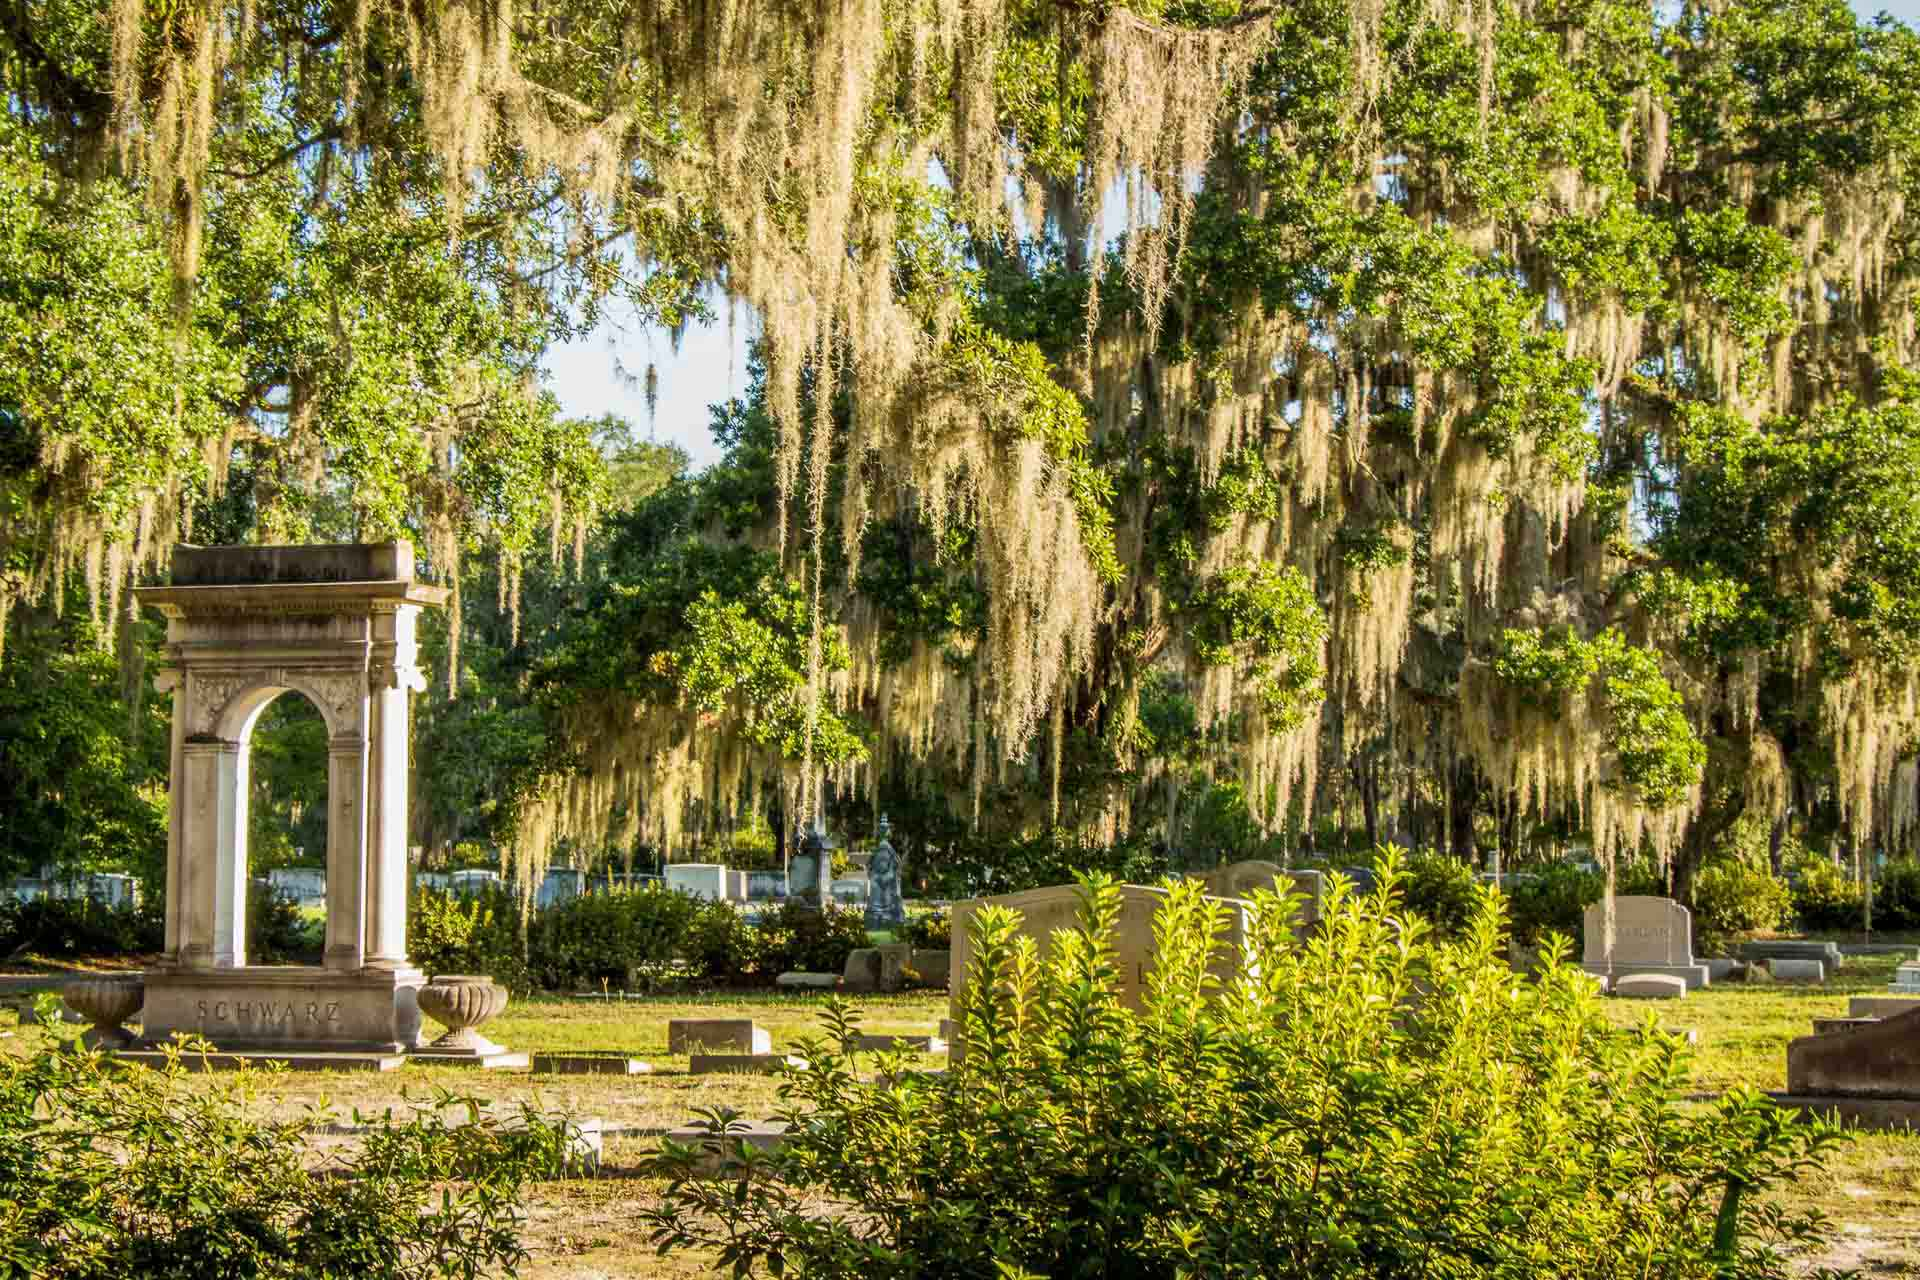 Family Can Travel - 2 Days in Savannah with Kids - Bonaventure Cemetery